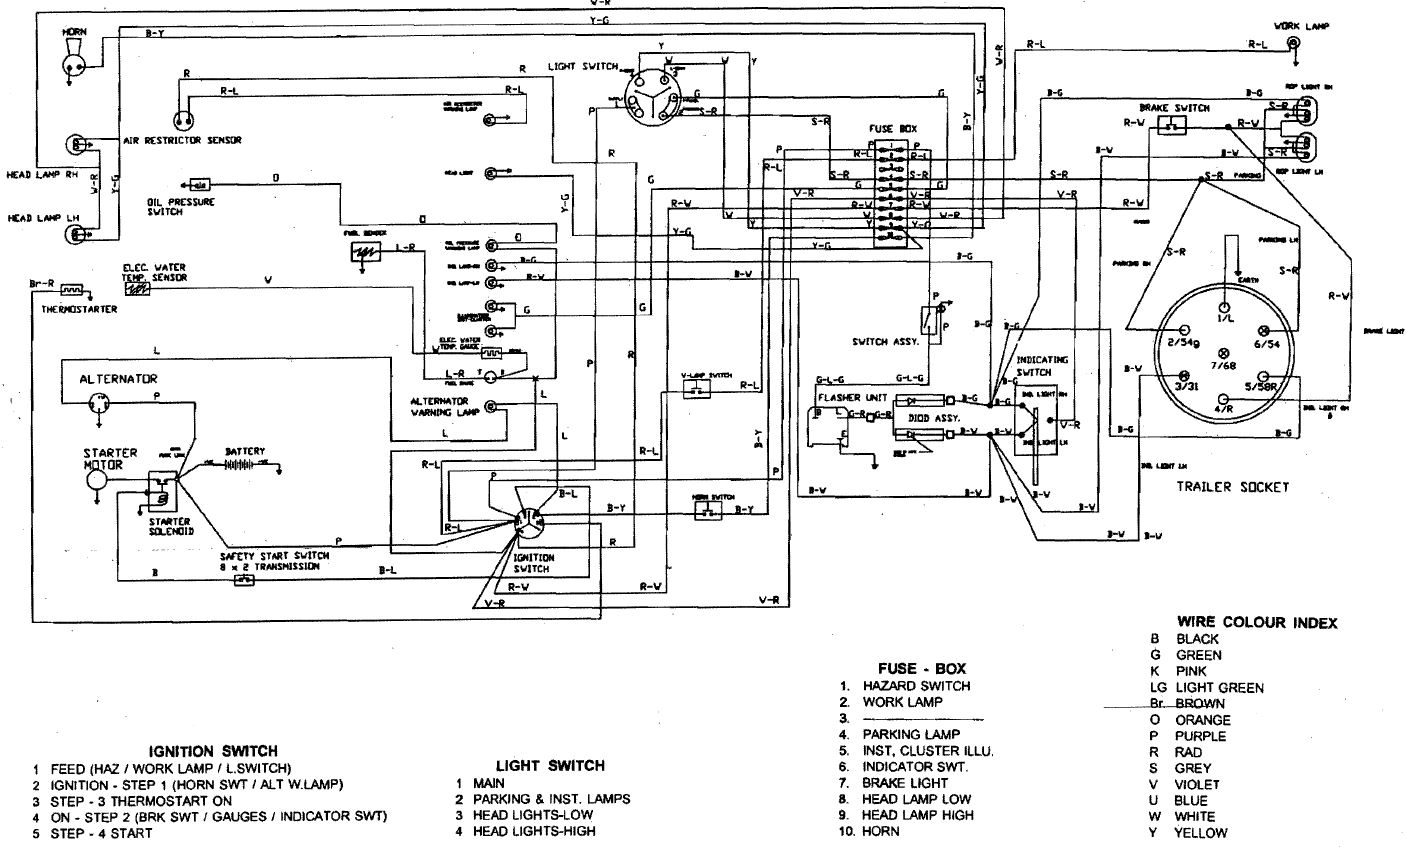 20158463319_b82d524c3d_o ignition switch wiring diagram ignition switch diagram at alyssarenee.co